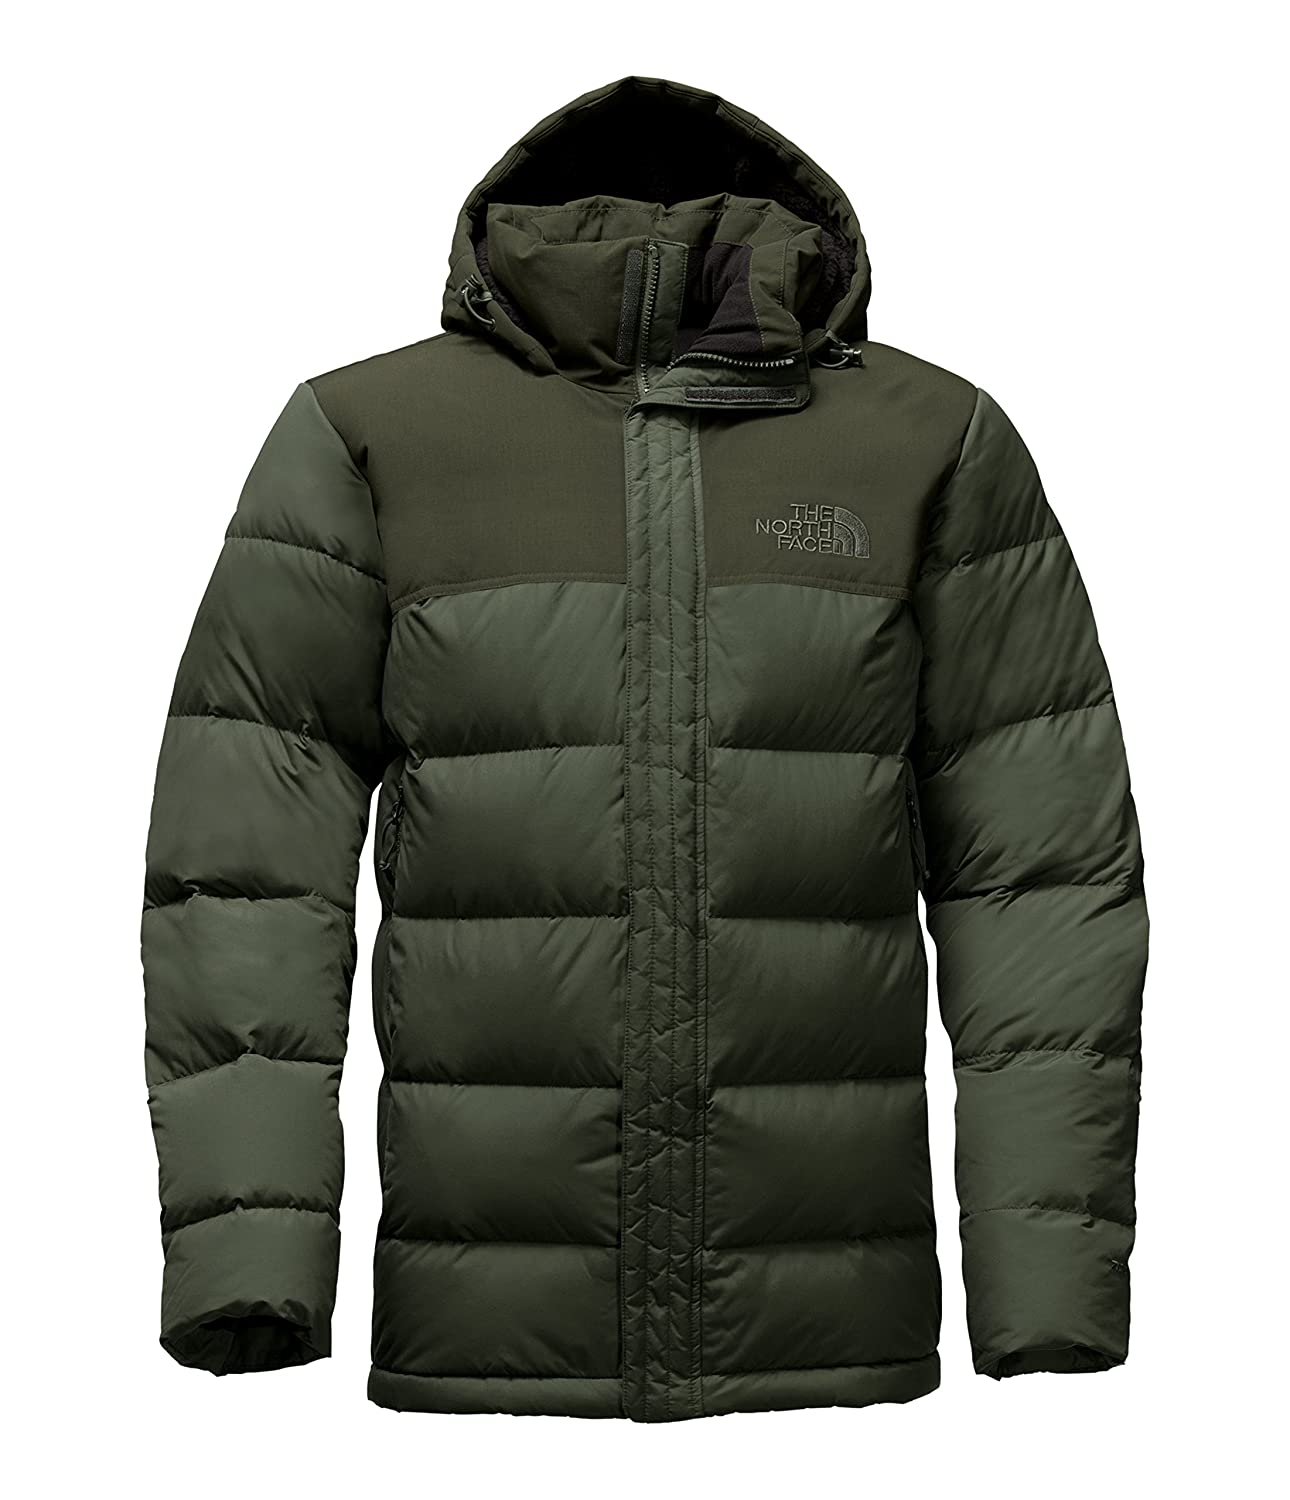 d43ddbface Top4  The North Face Men s Nuptse Ridge Parka Down Puffer Jacket. Wholesale  Price  700-fill goose ...